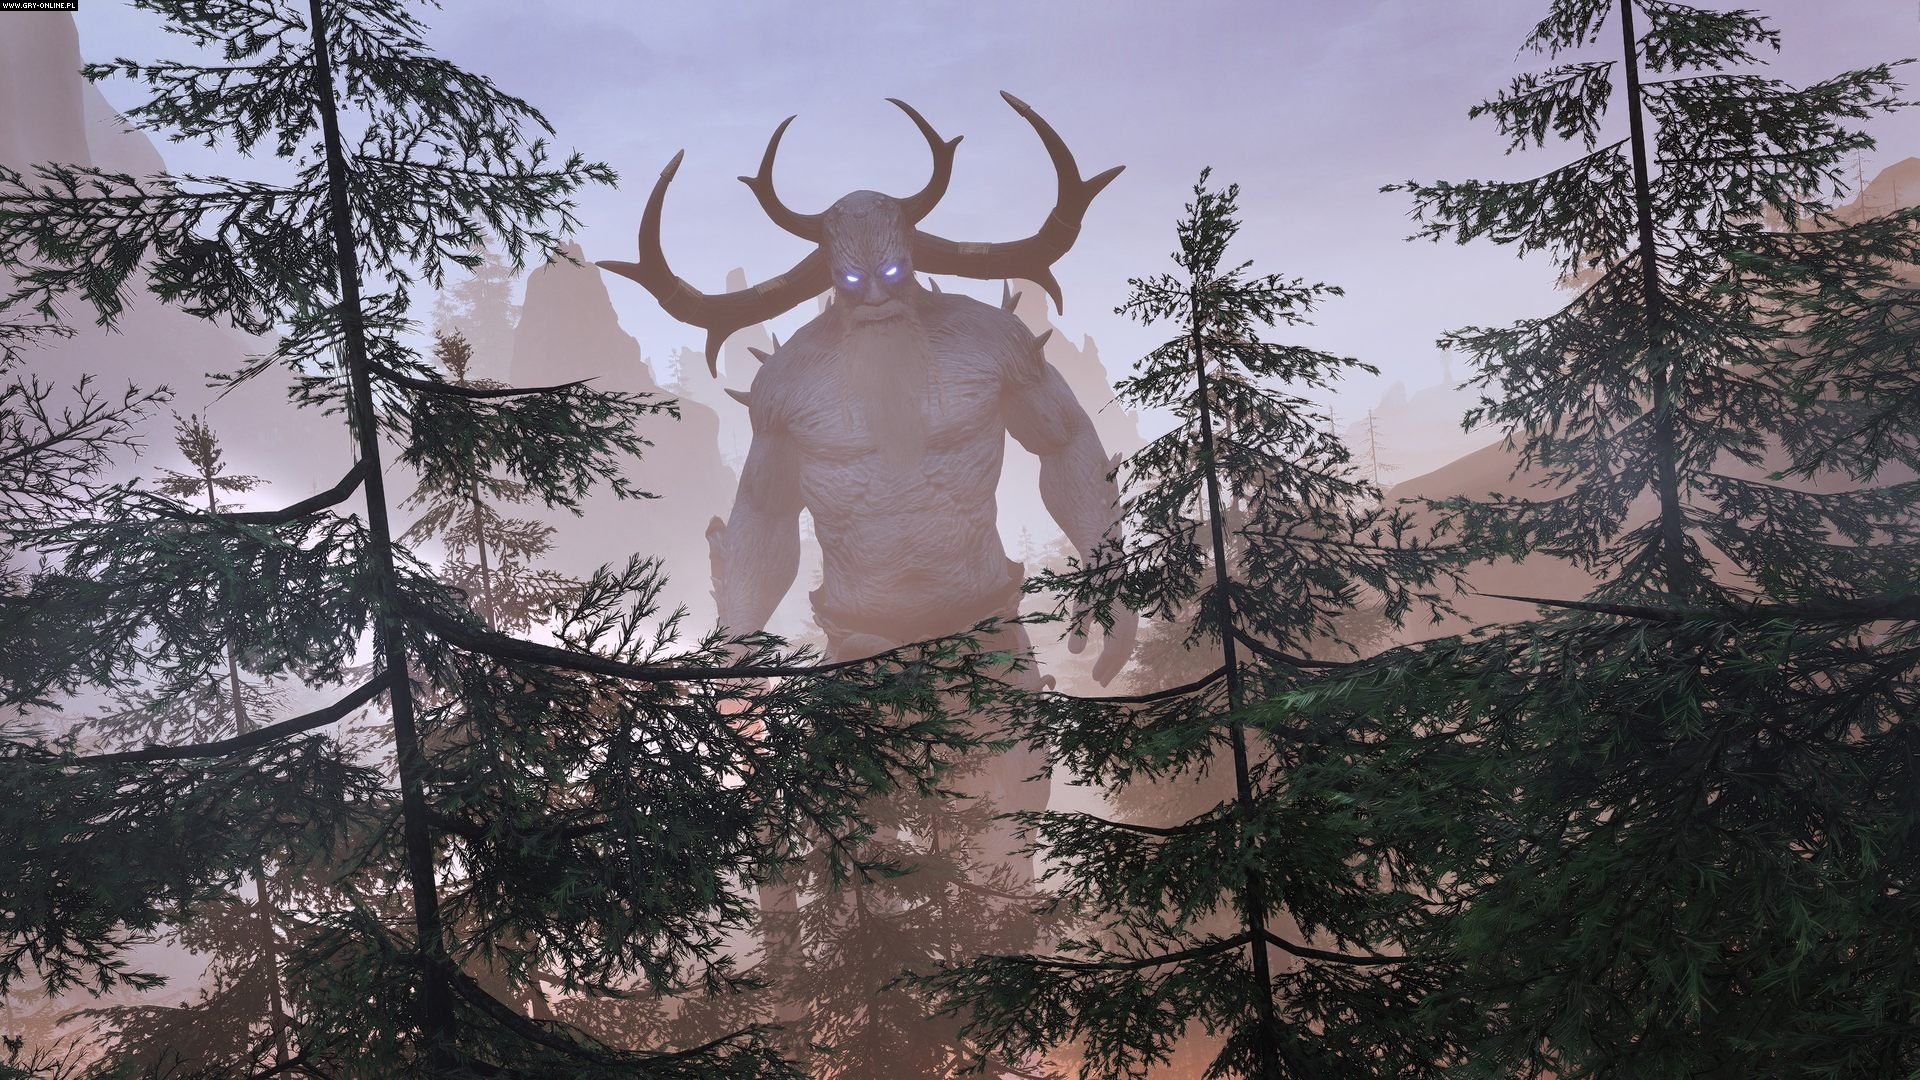 Conan Exiles PC Gry Screen 12/125, FunCom, Deep Silver / Koch Media